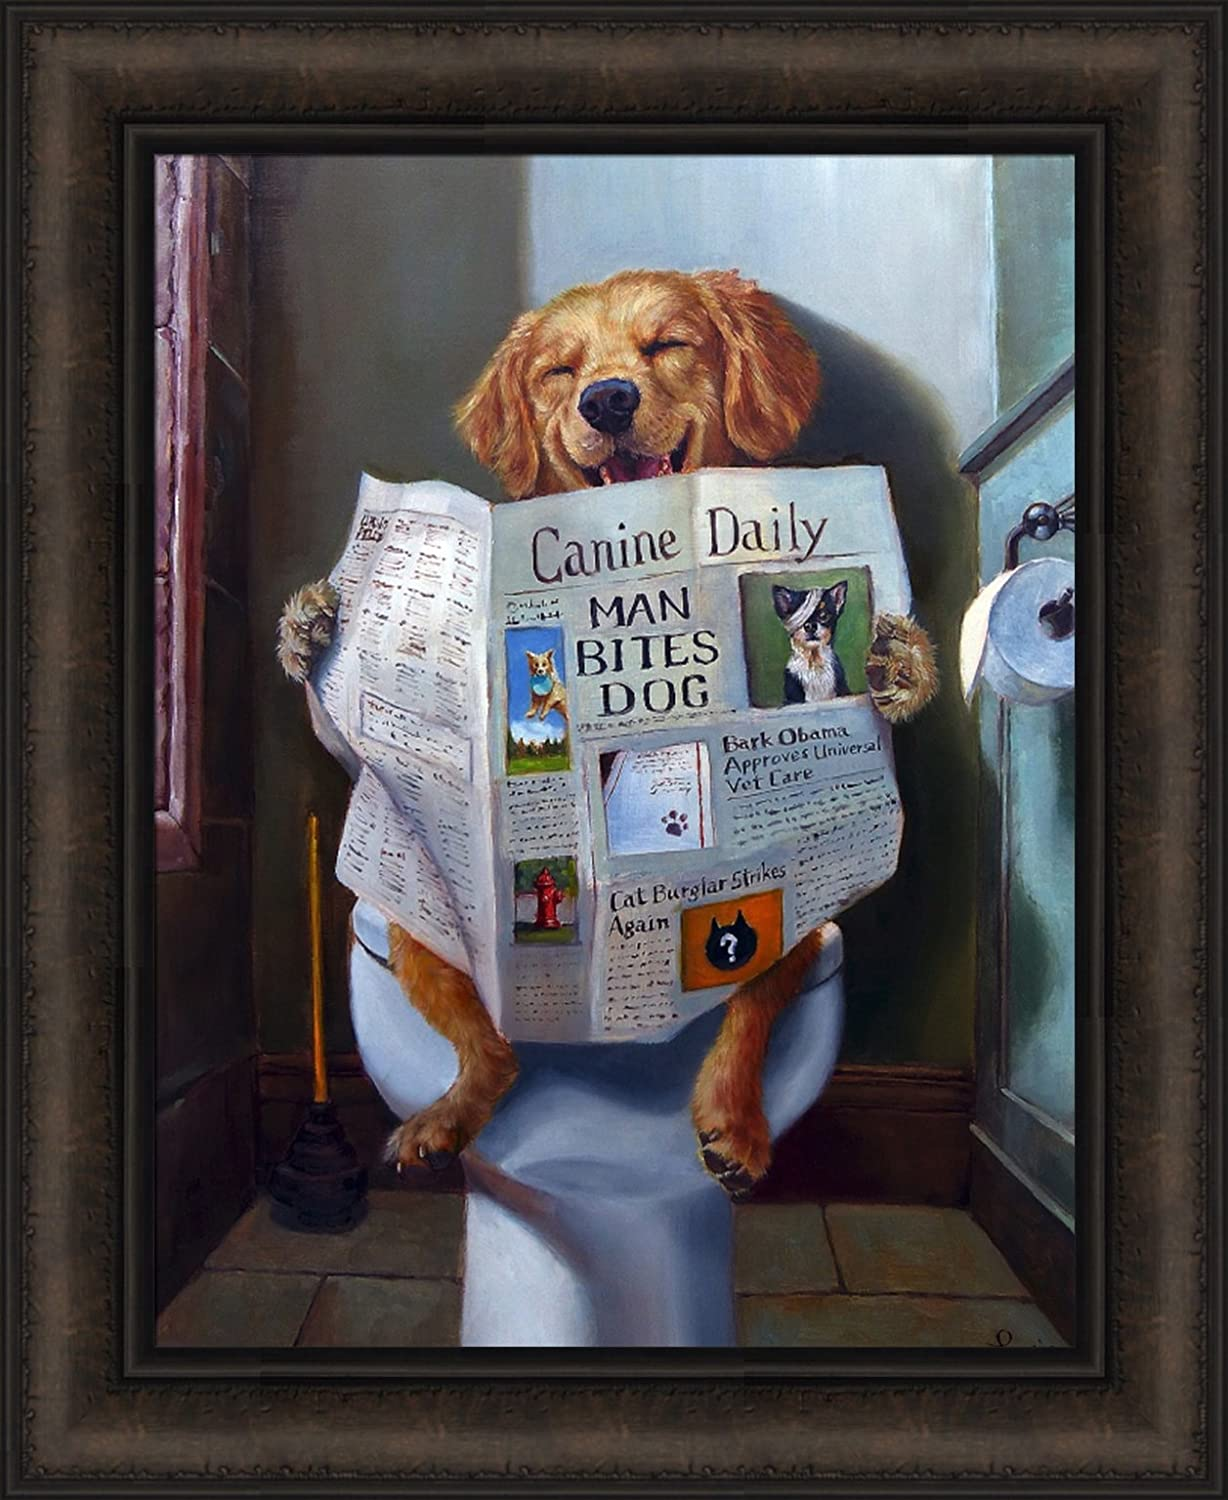 Dog Gone Funny by Lucia Heffernan 18x22 Humorous Reading Newspaper Canine Daily Toilet Bathroom Framed Art Print Picture